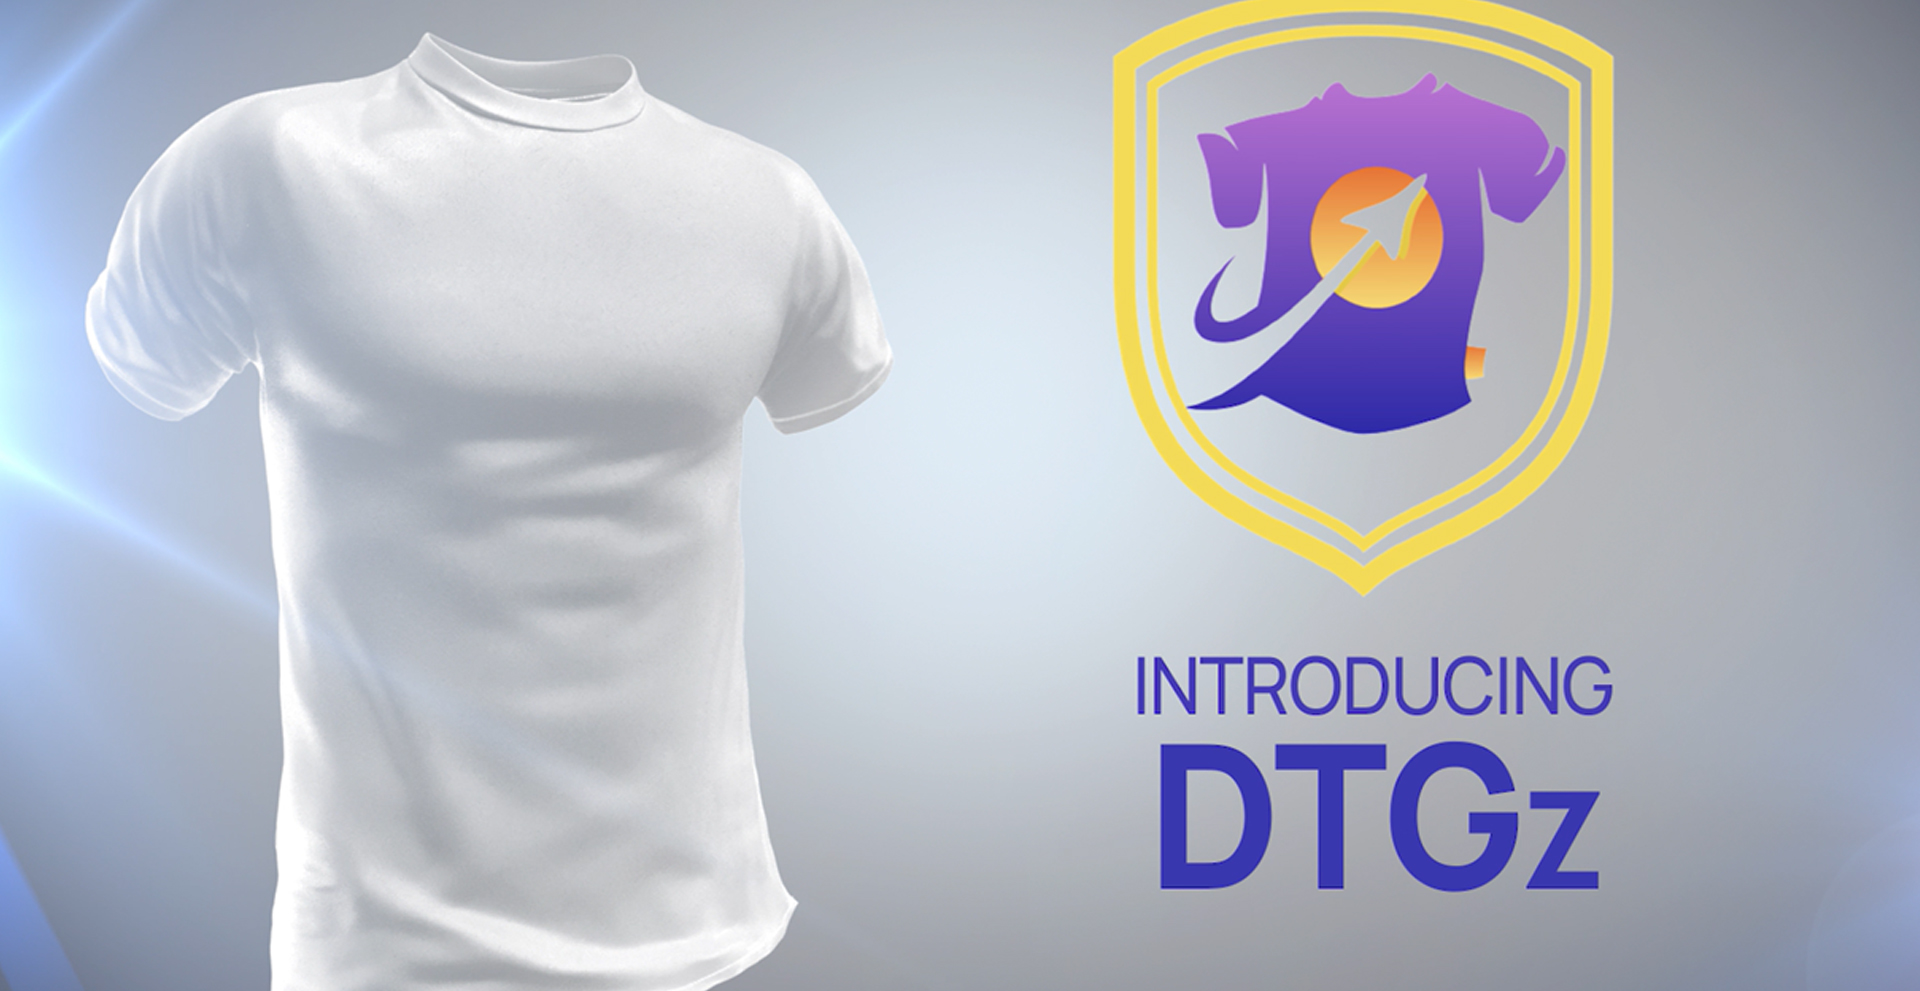 Introducing DTGz